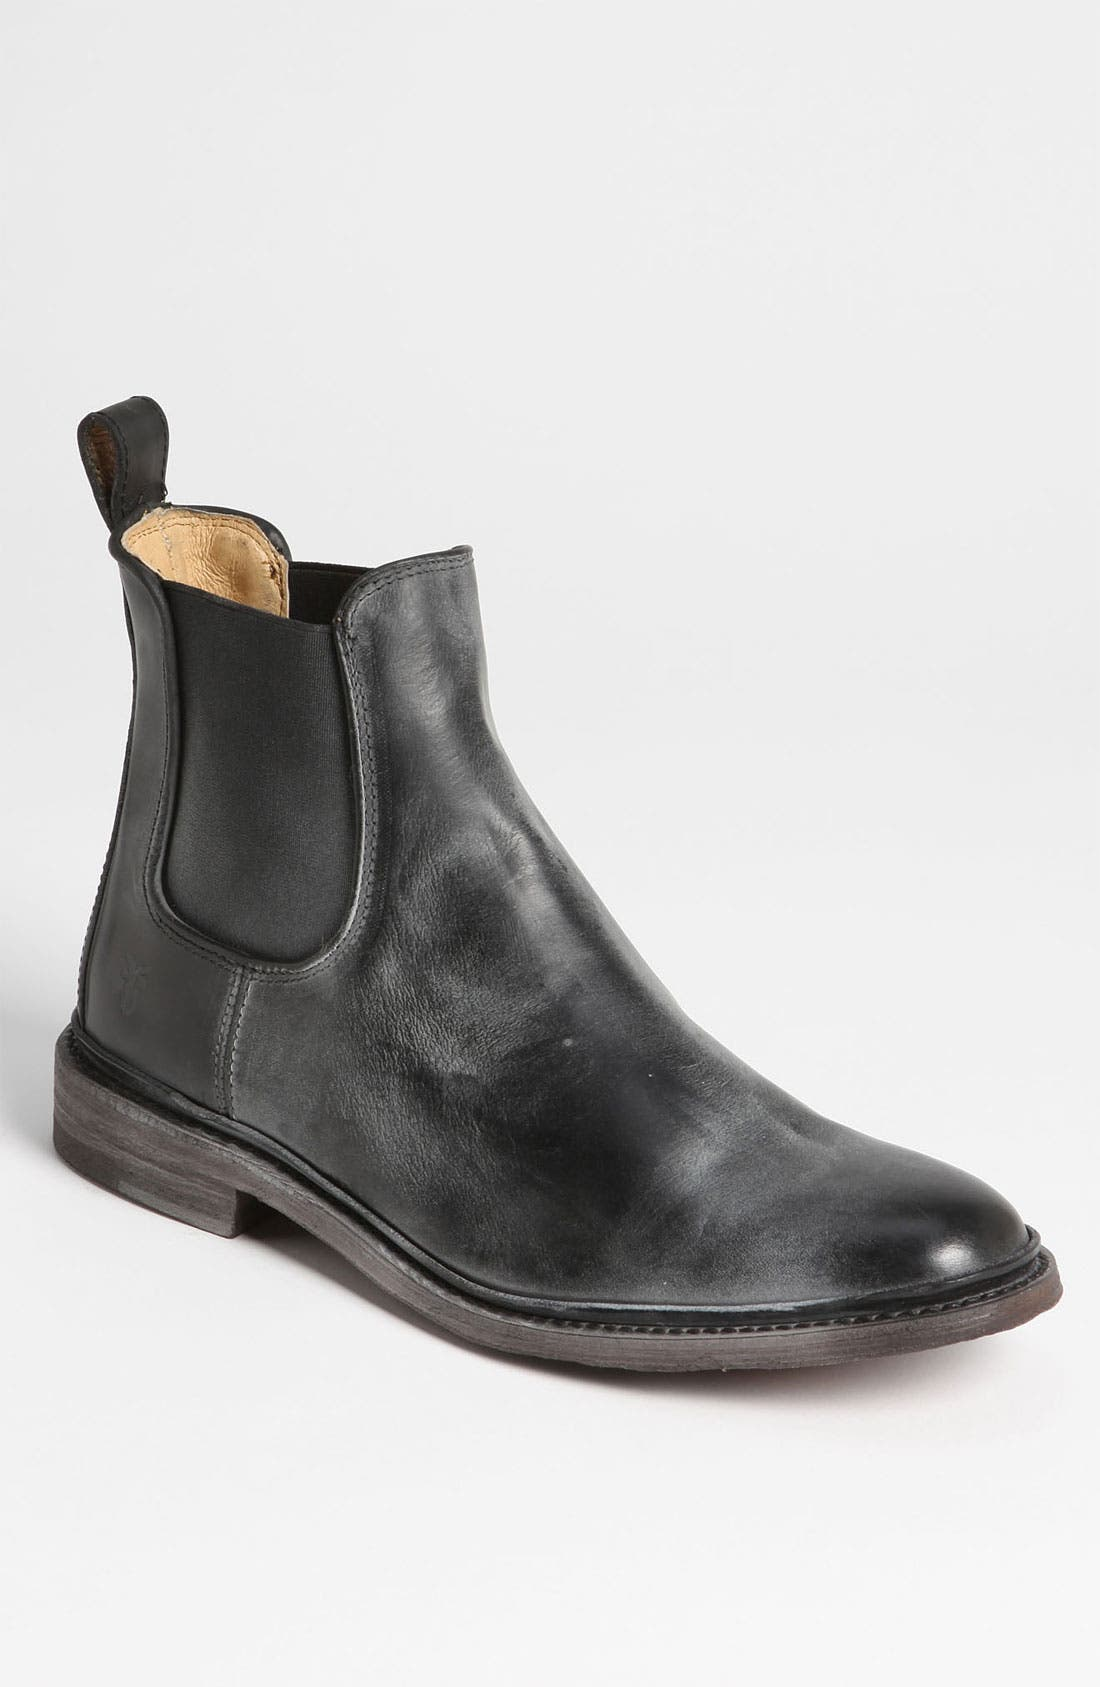 Alternate Image 1 Selected - Frye 'James' Chelsea Boot (Online Only)